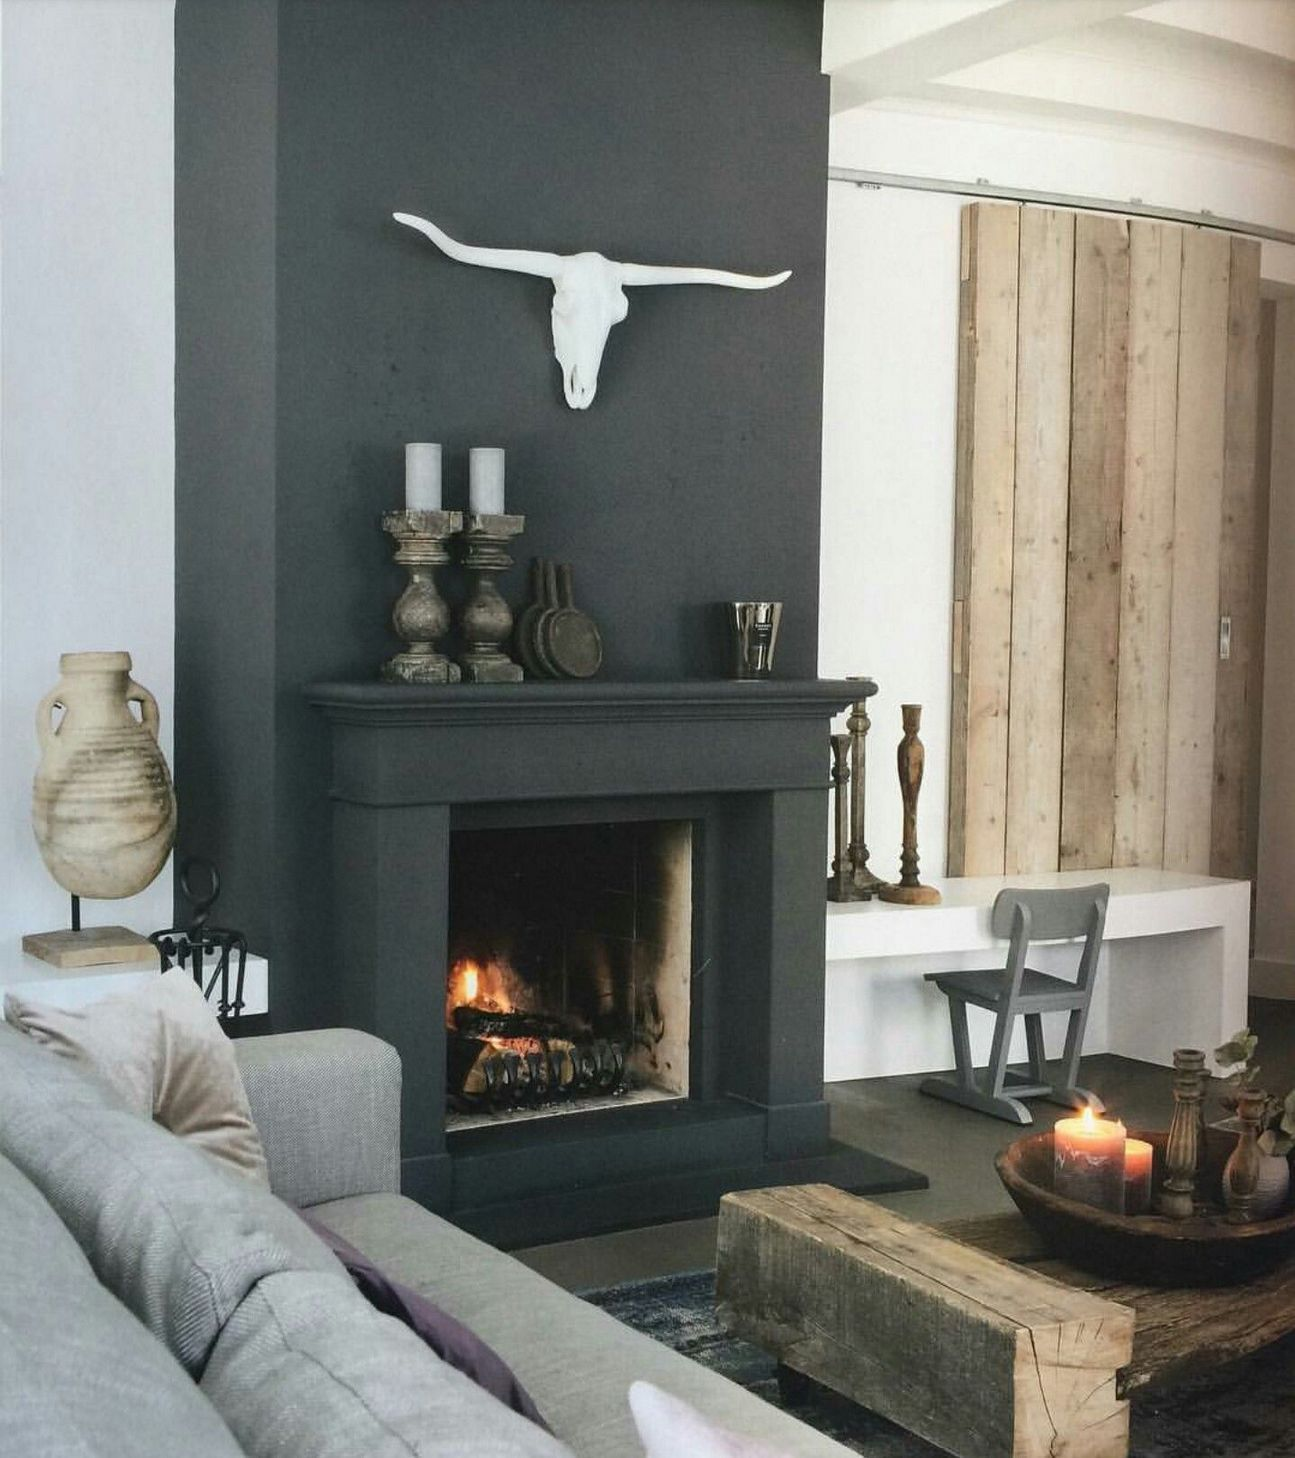 Accent Walls Modern Fireplace: 45+ Perfect Modern Fireplaces For Winter Decor Ideas